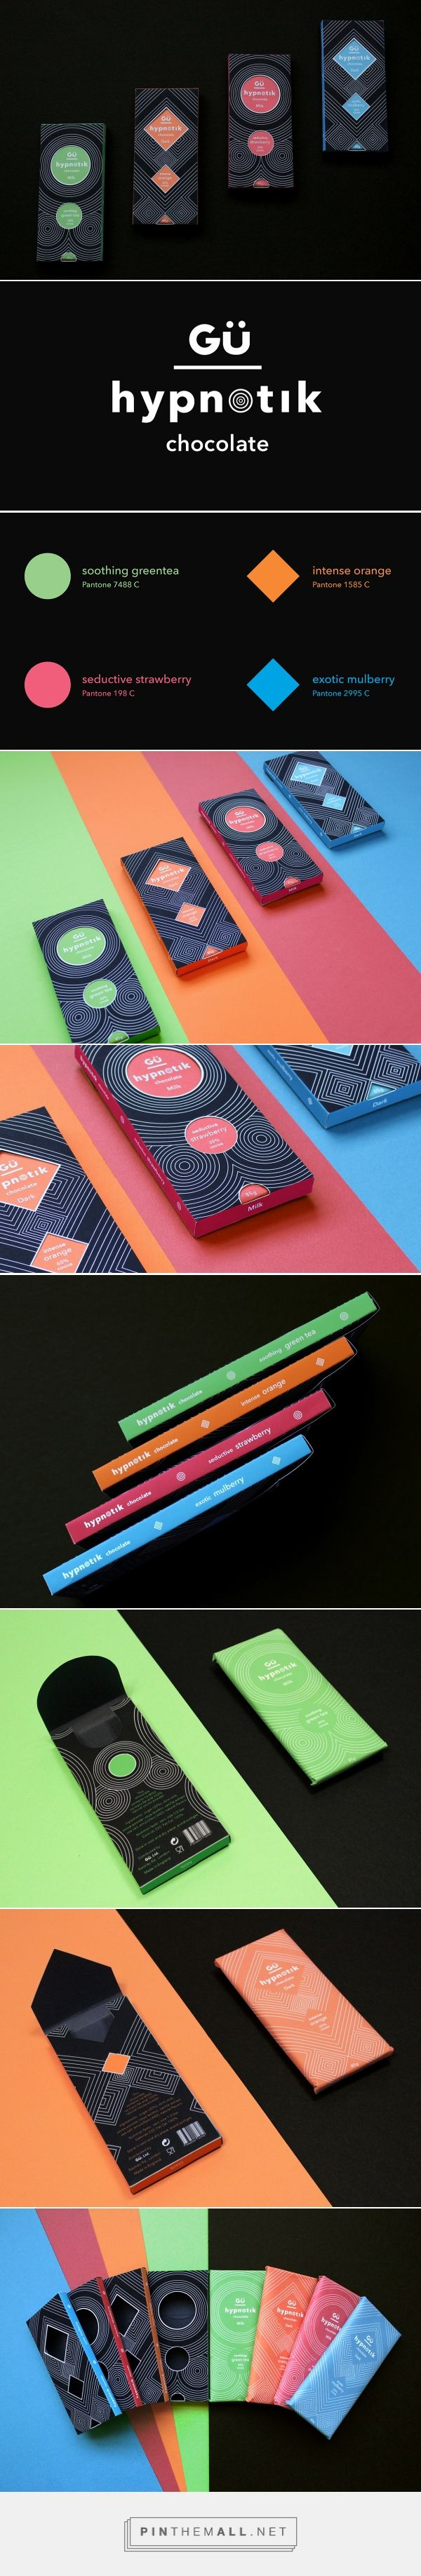 """Art direction, branding and packaging for Hypnotik Chocolate on Behance by Huan Nguyen, Long Beach CA curated by Packaging Diva PD. Conceptual chocolate brand based on idea of using optical illusion, bold graphic and vibrant colors to """"hypnotize"""" and attract a consumer's attention."""